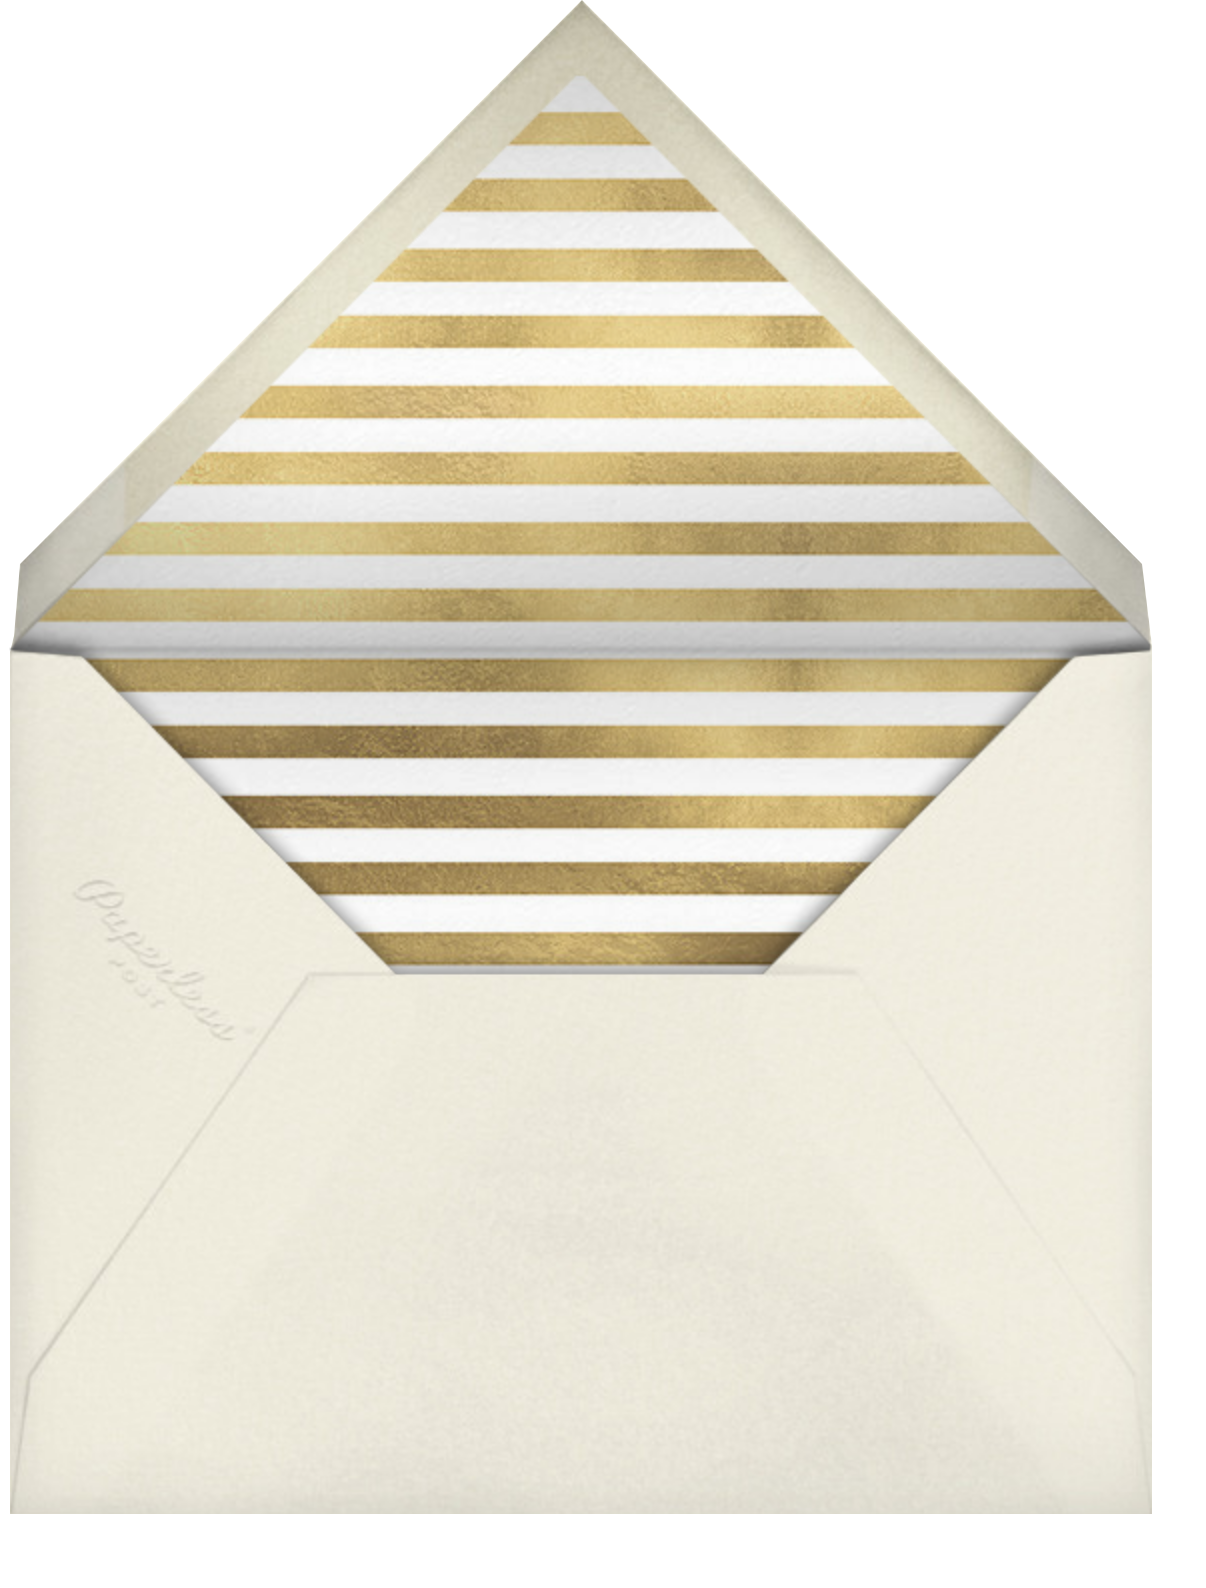 Orchid Shower (Square) - Cream - kate spade new york - Thank you - envelope back